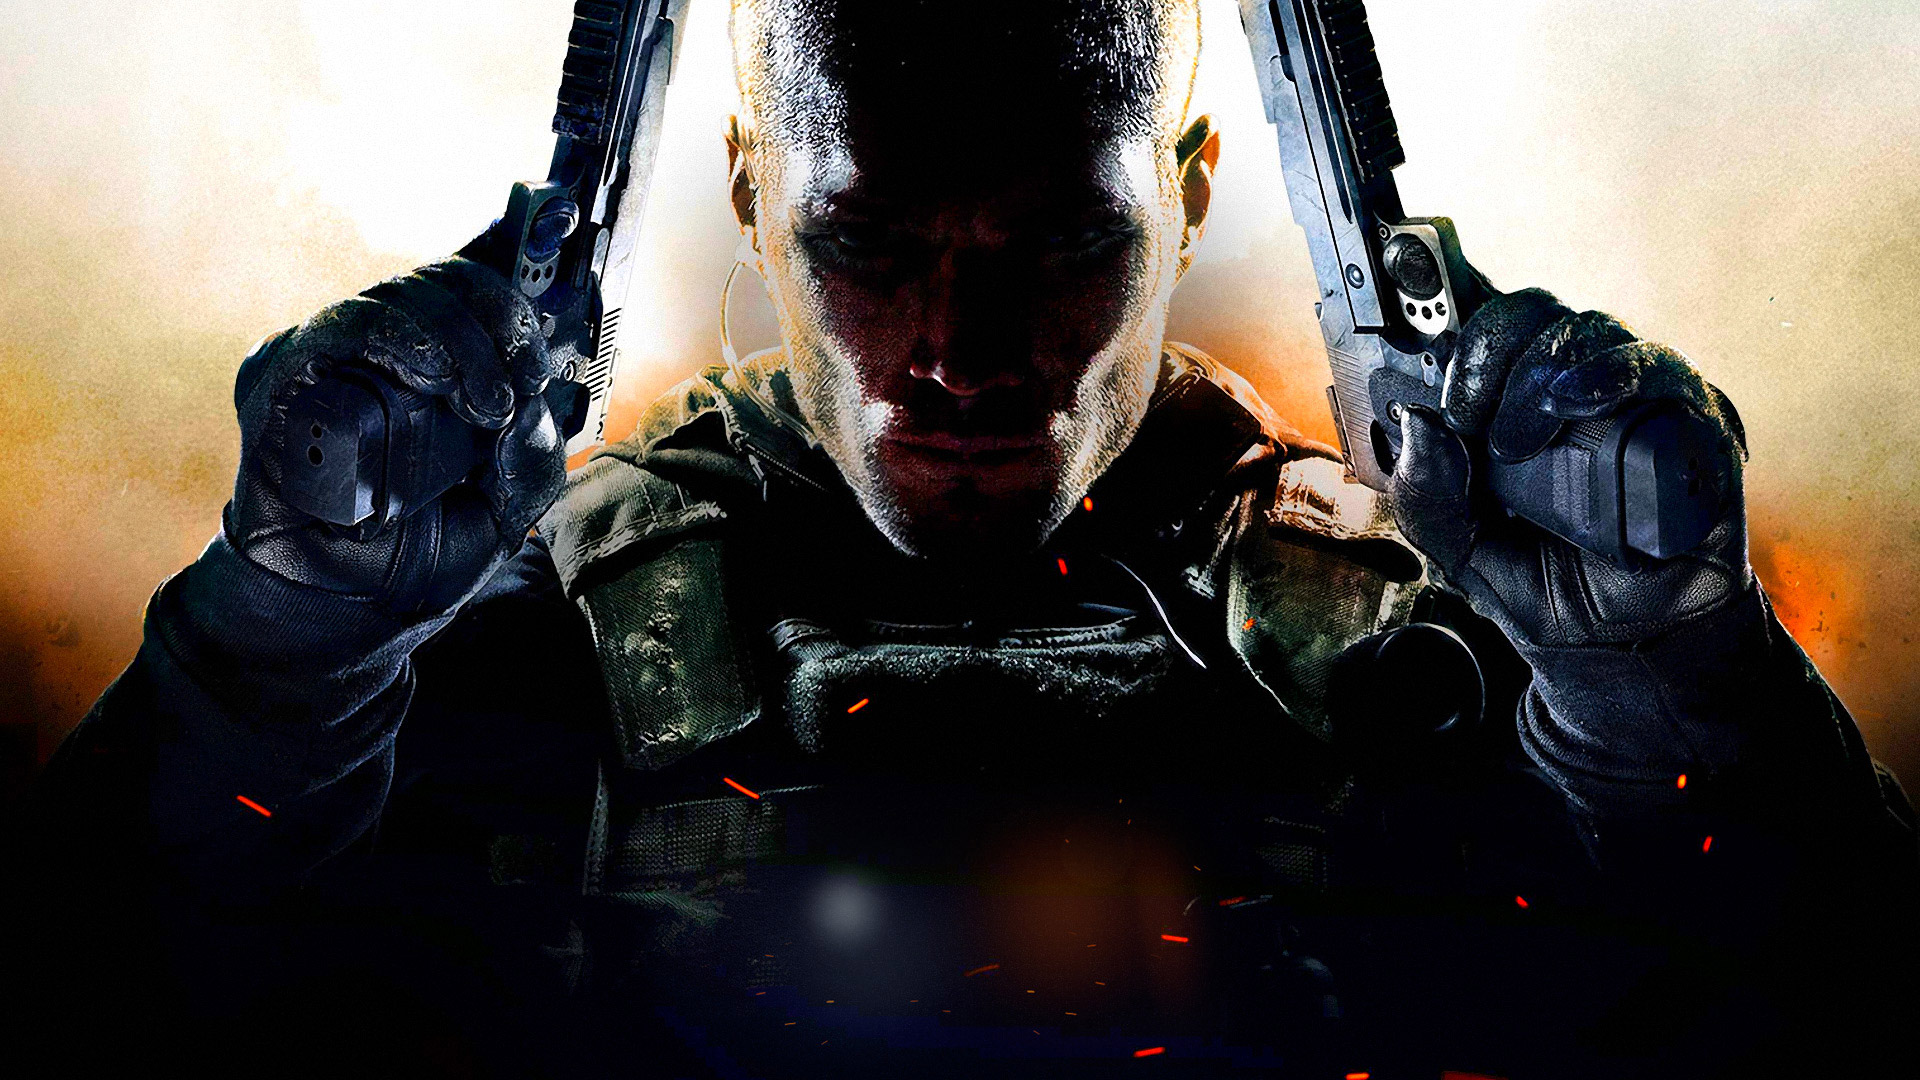 Call Of Duty Black Ops 3 Wallpaper Hd 1920x1080 Wallpaper